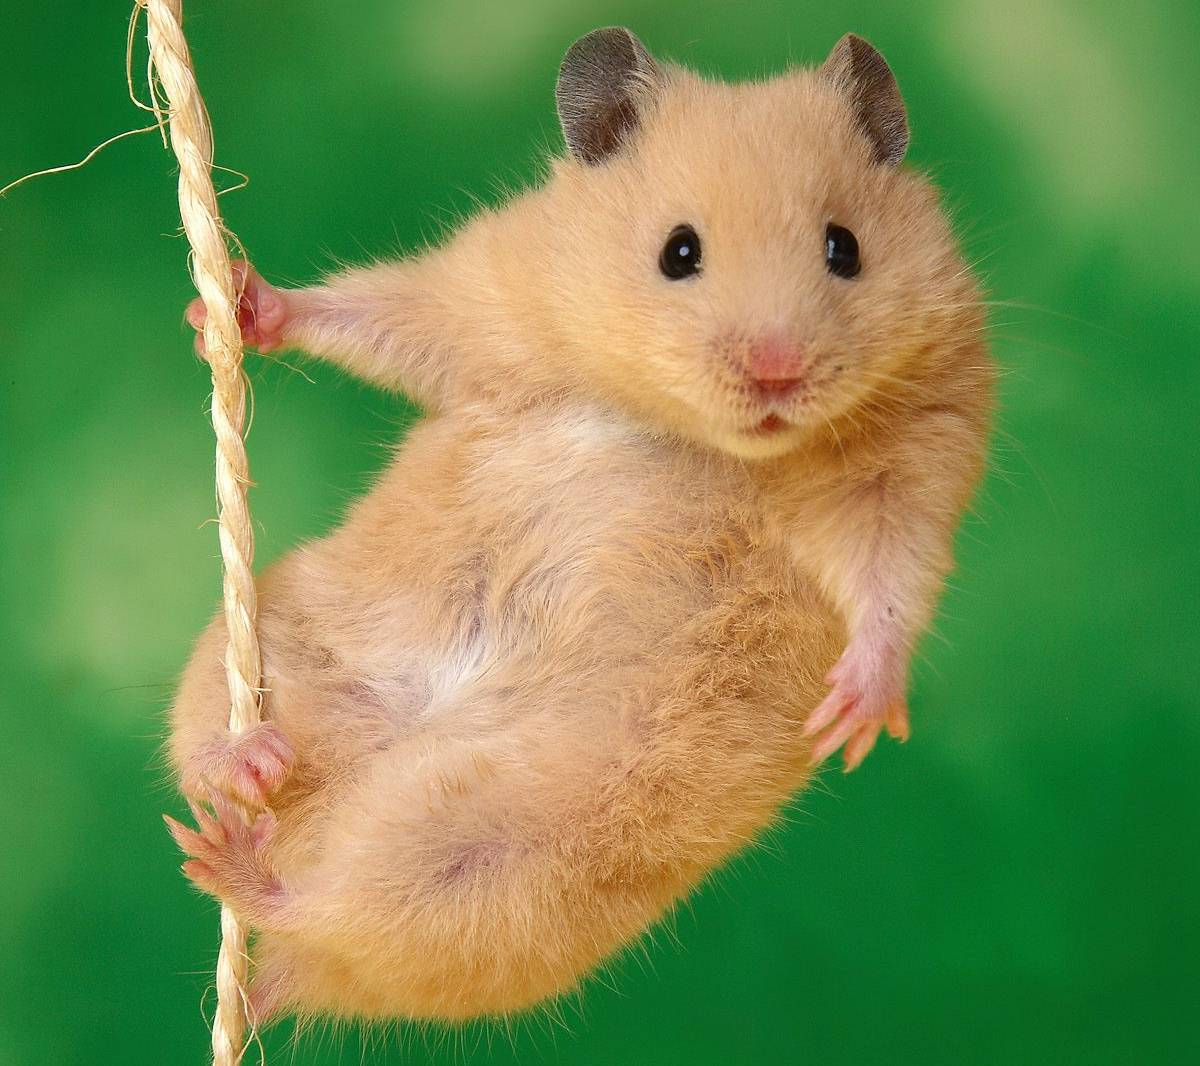 Hamster Background Images HD HD Wallpapers 1200x1066